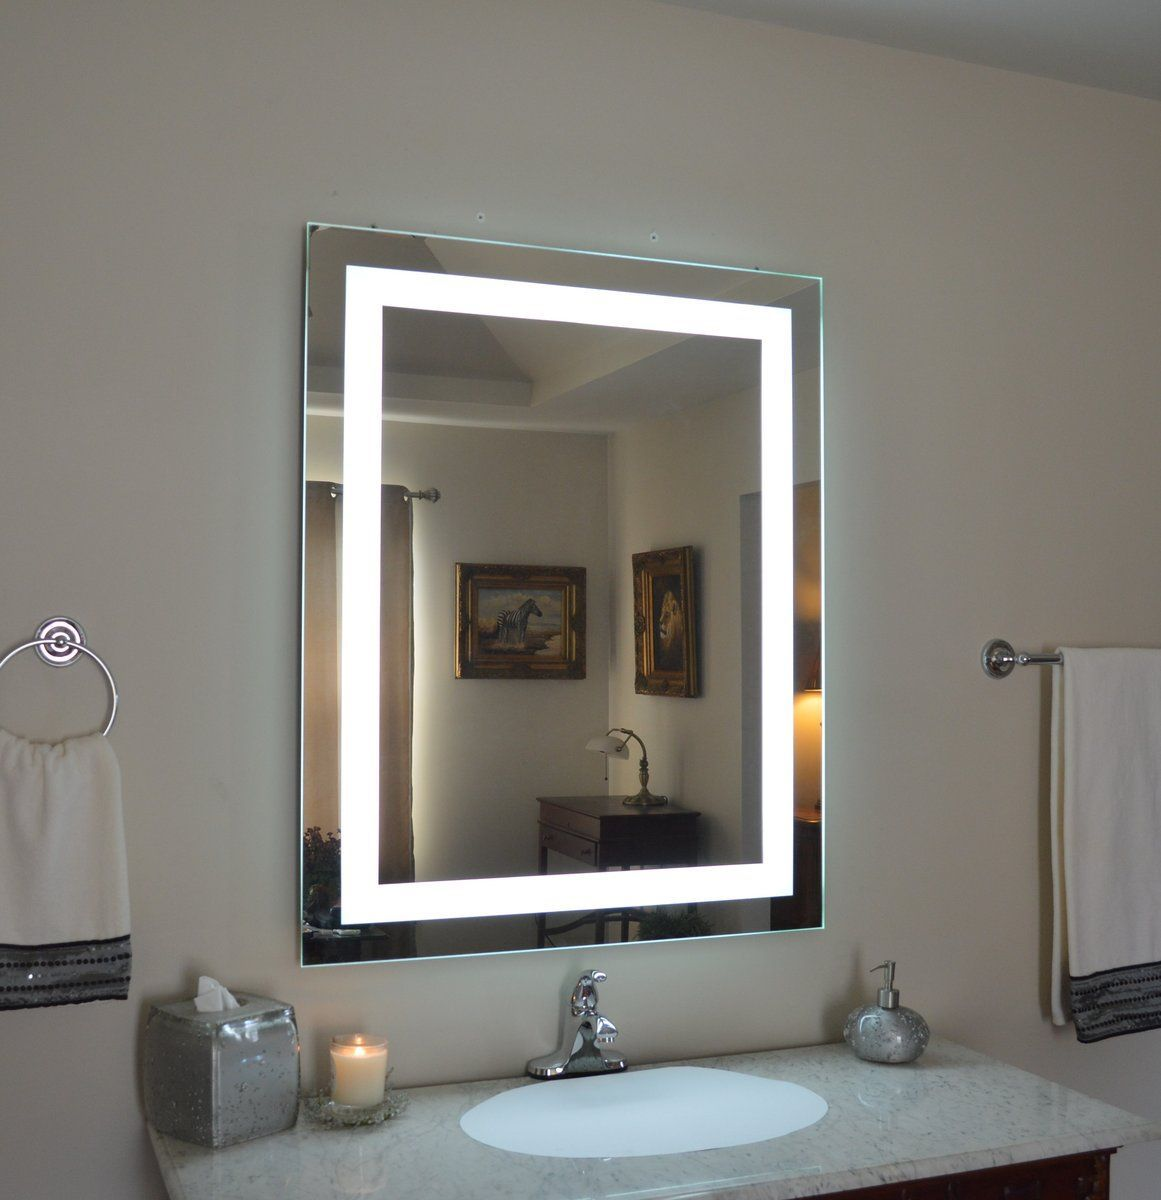 Mirrors And Marble Brand Commercial Grade Wall Mounted Rectangular Led Bathroom Vanity Makeu Lighted Wall Mirror Wall Mounted Makeup Mirror Vanity Wall Mirror